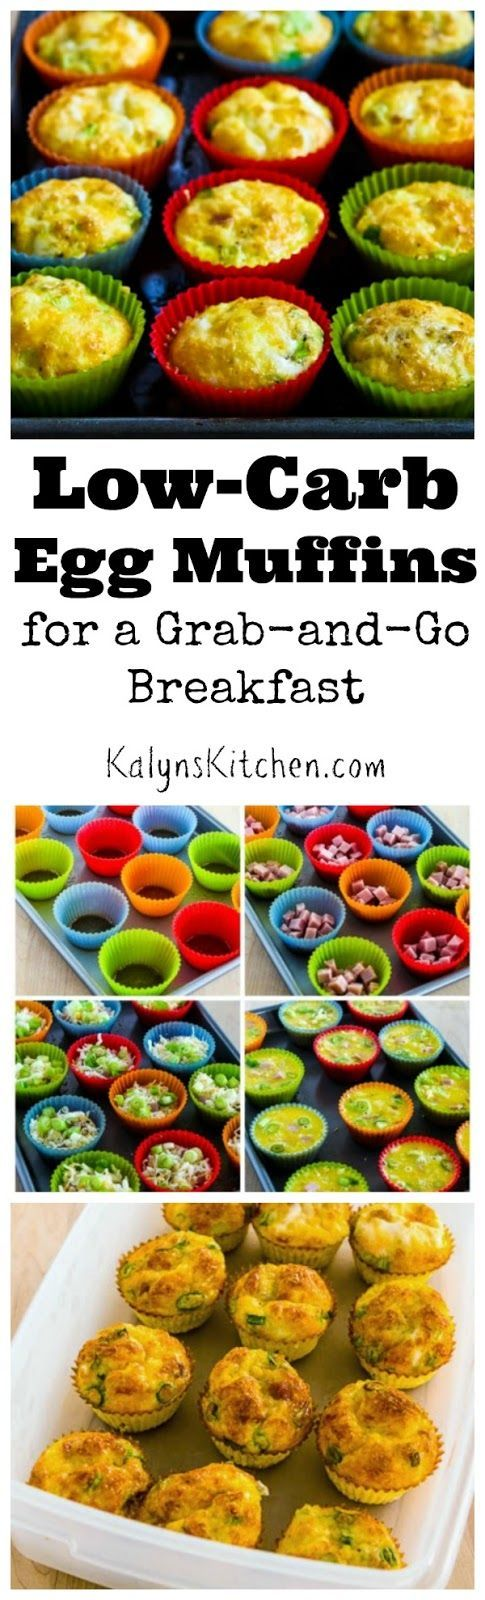 I think my Low-Carb Egg Muffins are perfect for a Grab-and-Go Breakfast any time of year, but these would be perfect for Back-to-School when you need something nutritious to feed the kids in a hurry! You can make them on the weekend and reheat all week. PIN NOW so you'll have this recipe when you need it. And for the adults, egg muffins are low-carb, gluten-free, and South Beach Diet friendly, and they're easy to make Paleo or Whole 30 approved as well. [from KalynsKitchen.com]